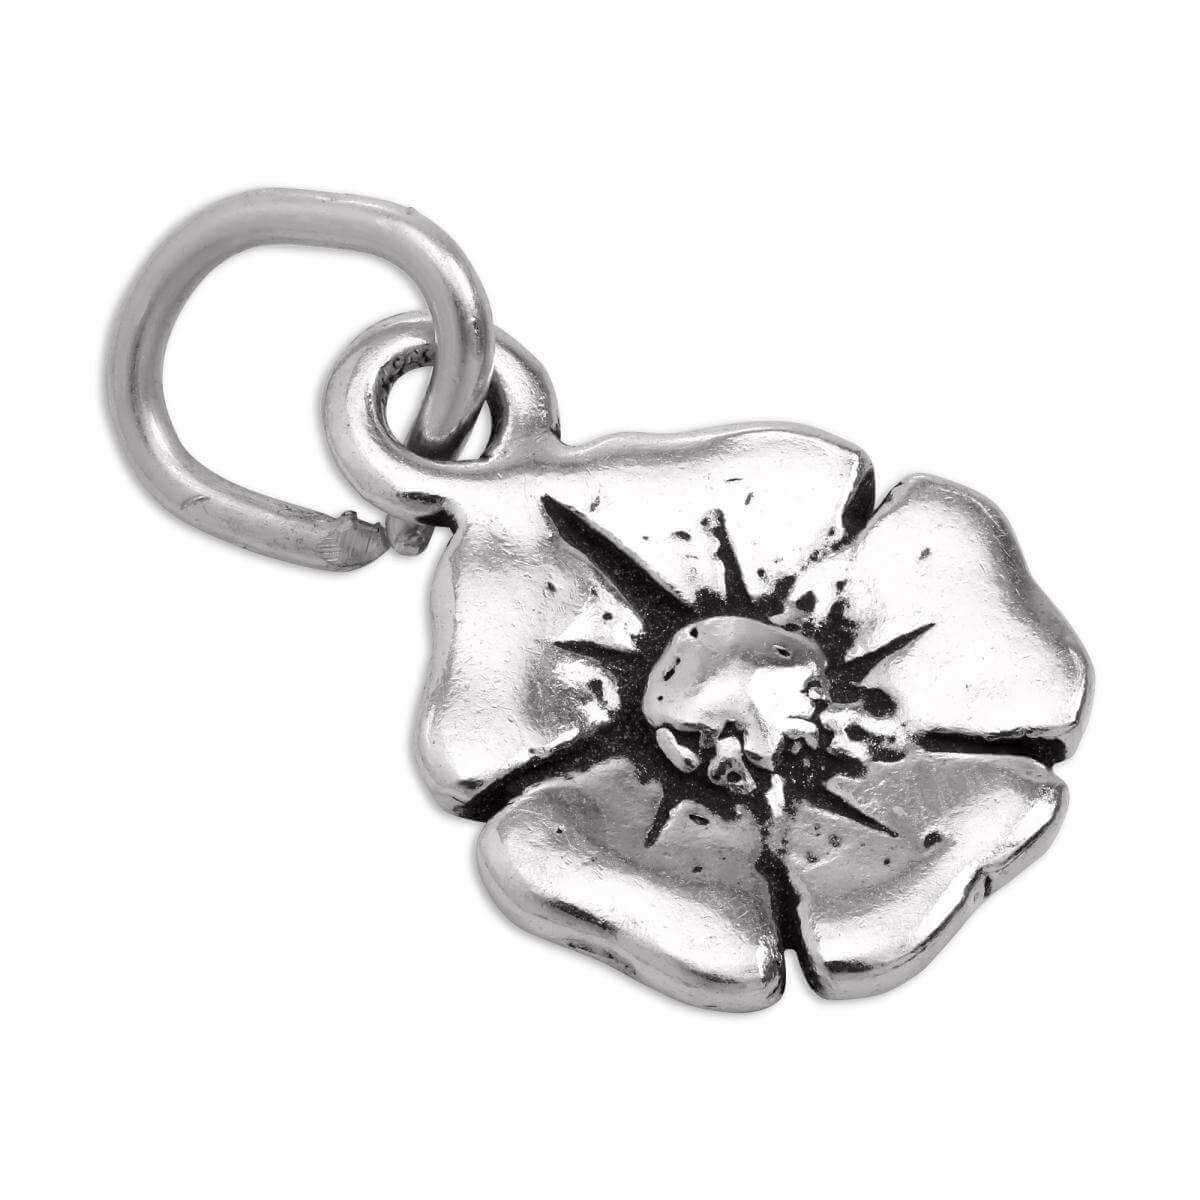 Tiny Sterling Silver Flat Flower Charm